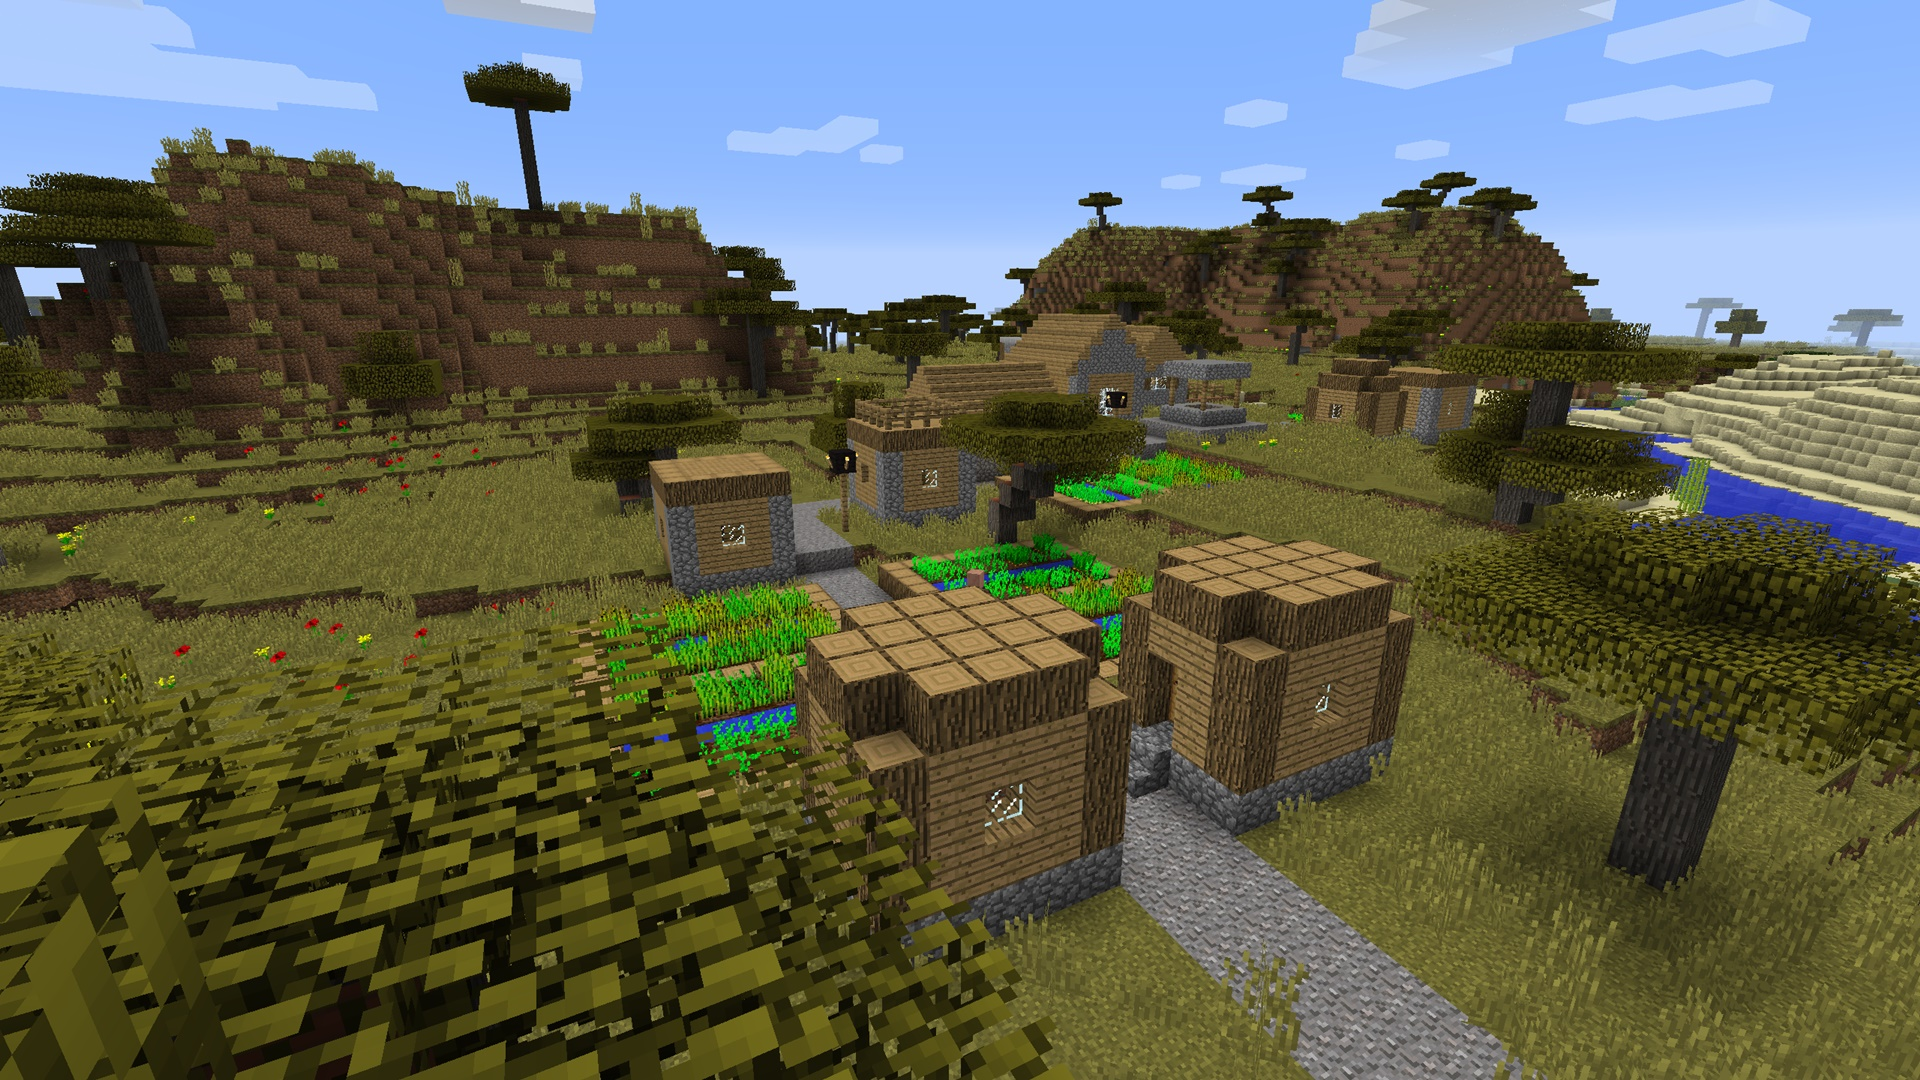 minecraft instant structures mod 1.6.4